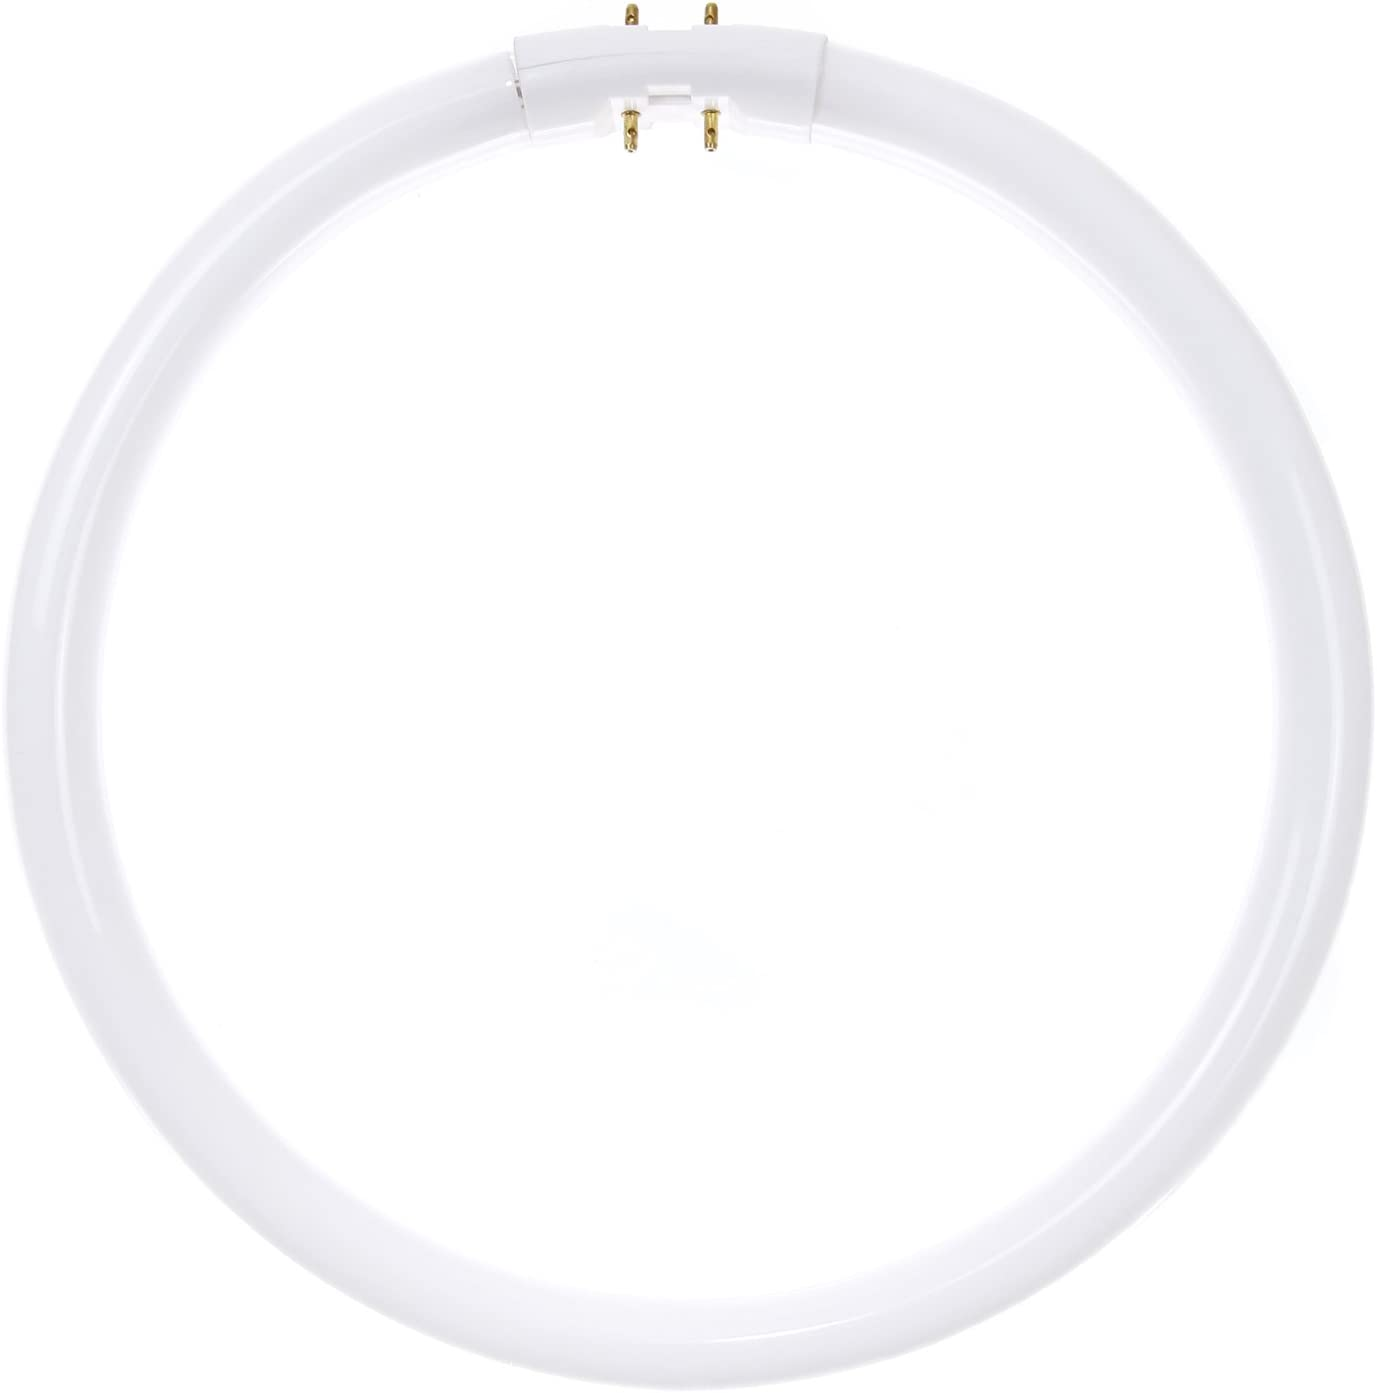 Sunlite FC40T5//SP835 Fluorescent 40W T5 Circline Ceiling Lights 2GX13 Base 3500K Neutral White Light